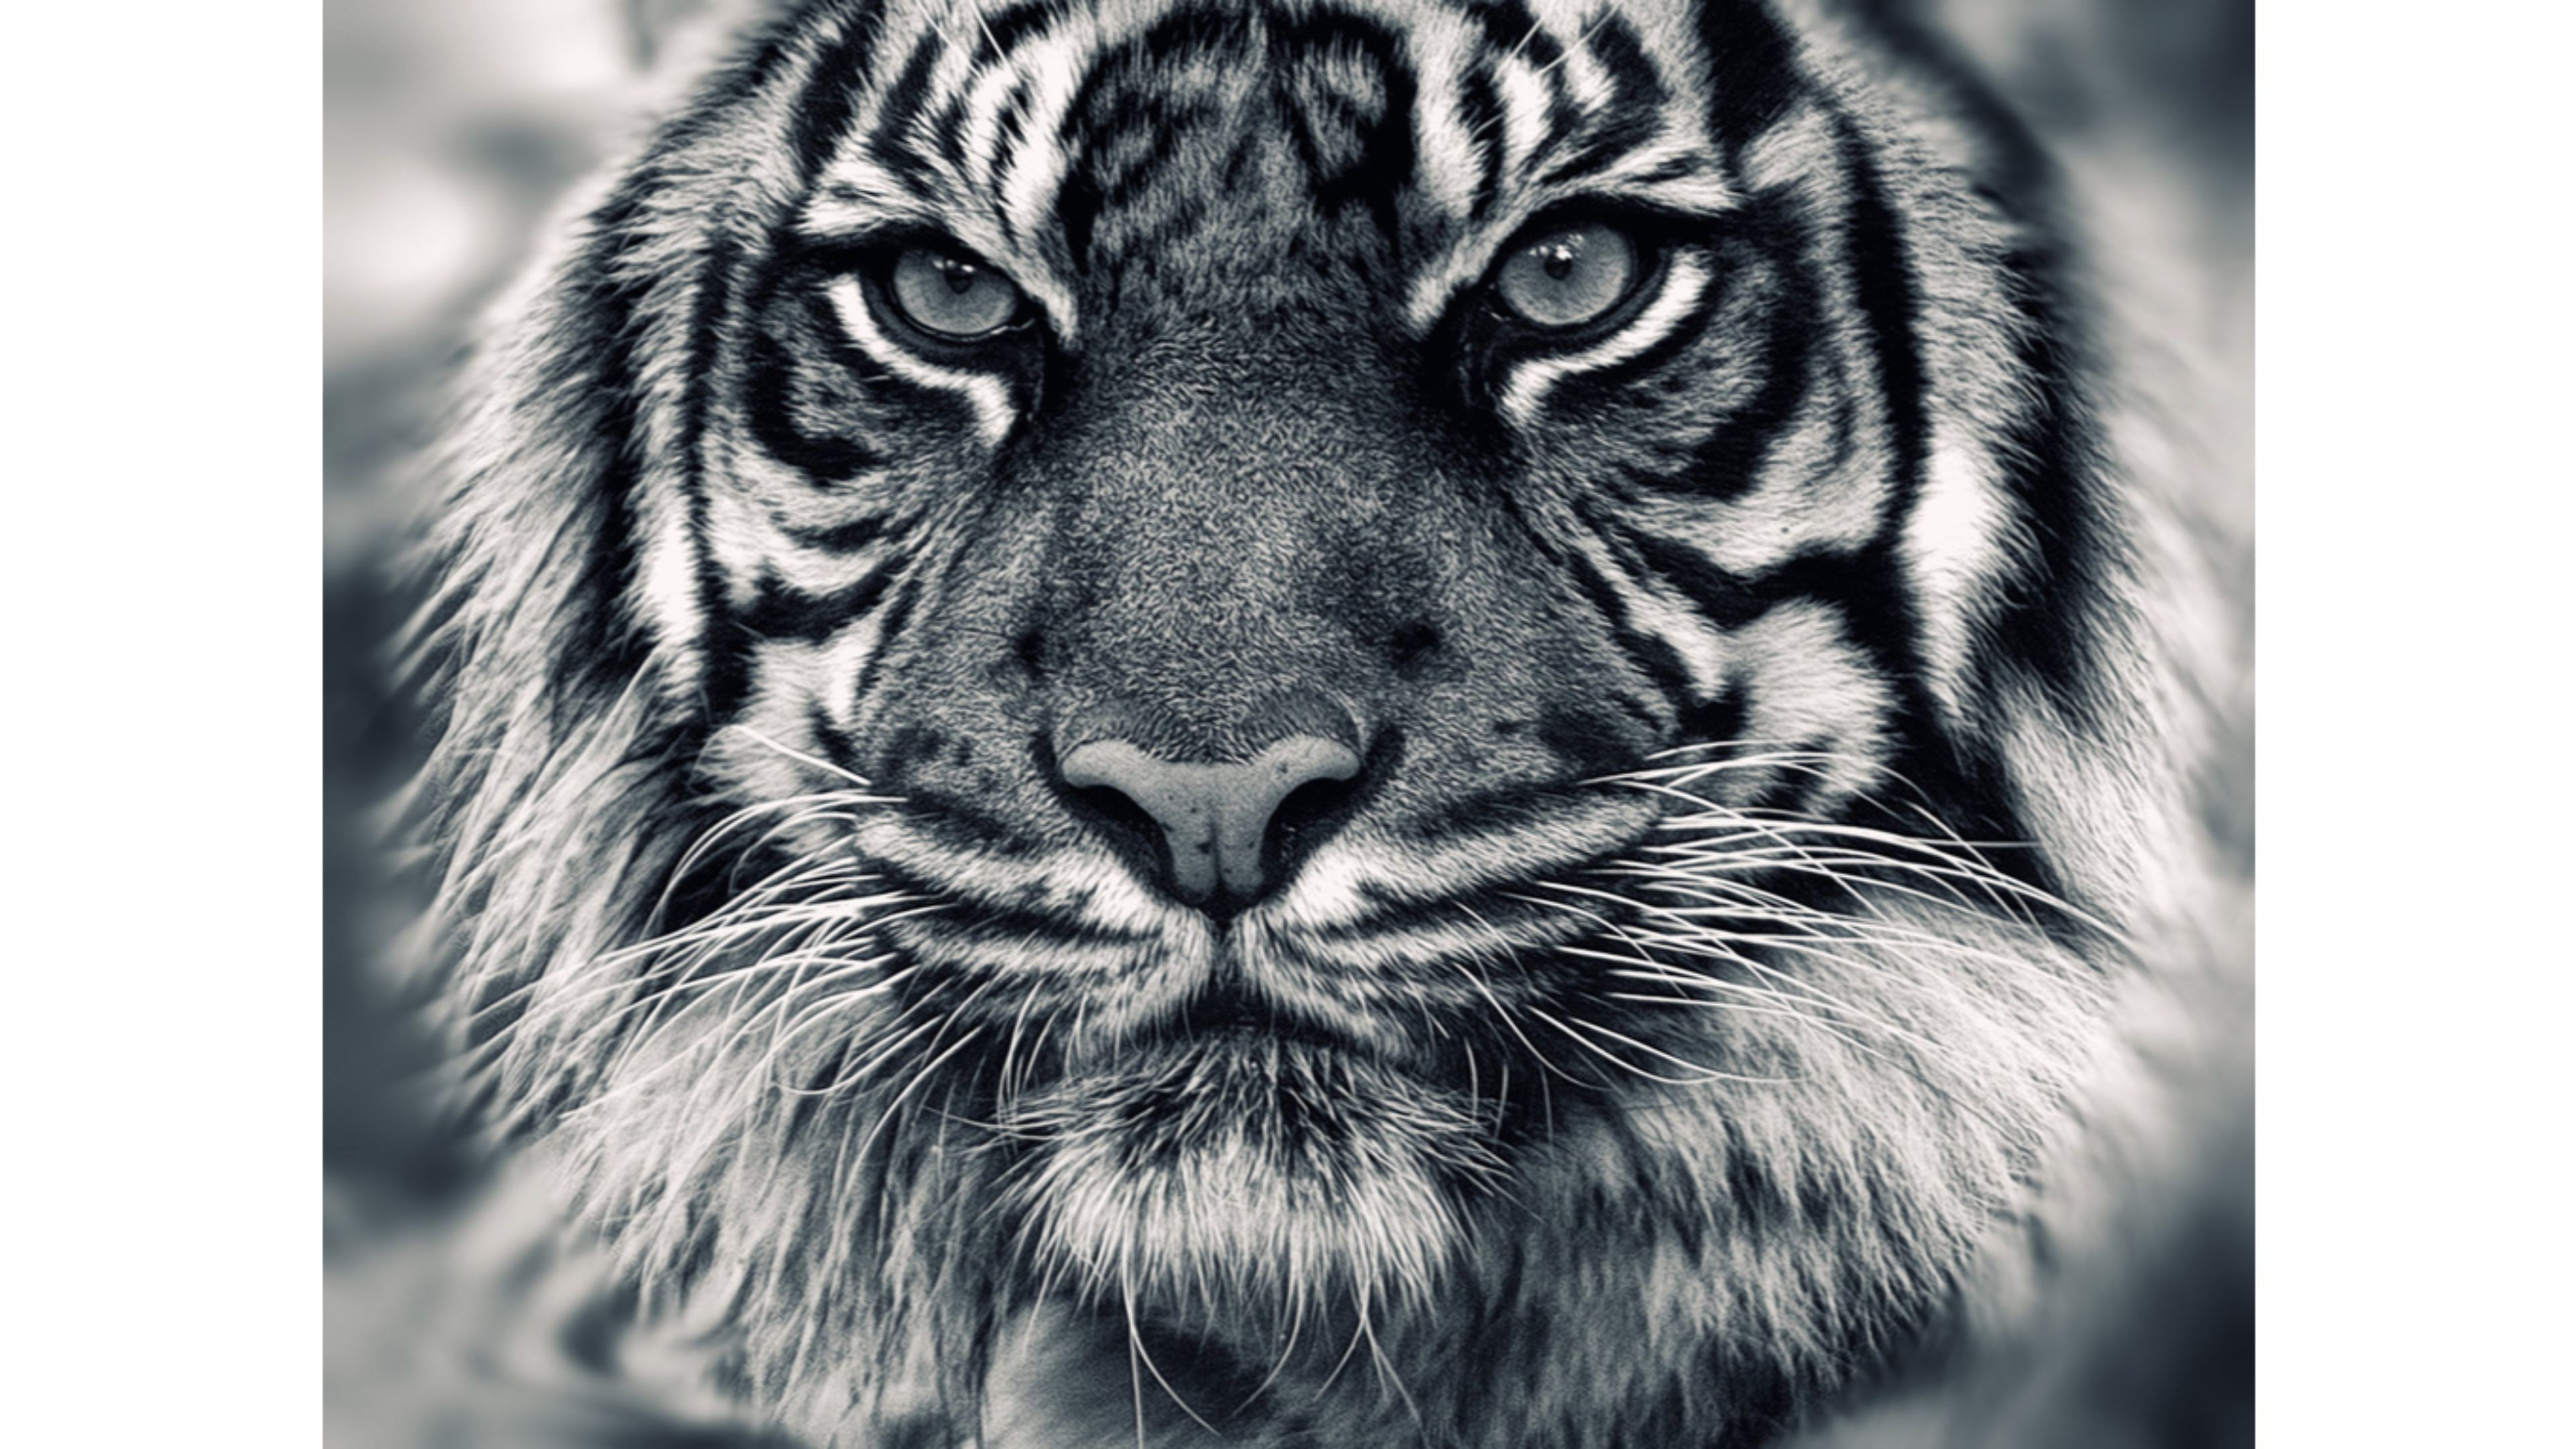 siberian tiger wallpapers 59 images